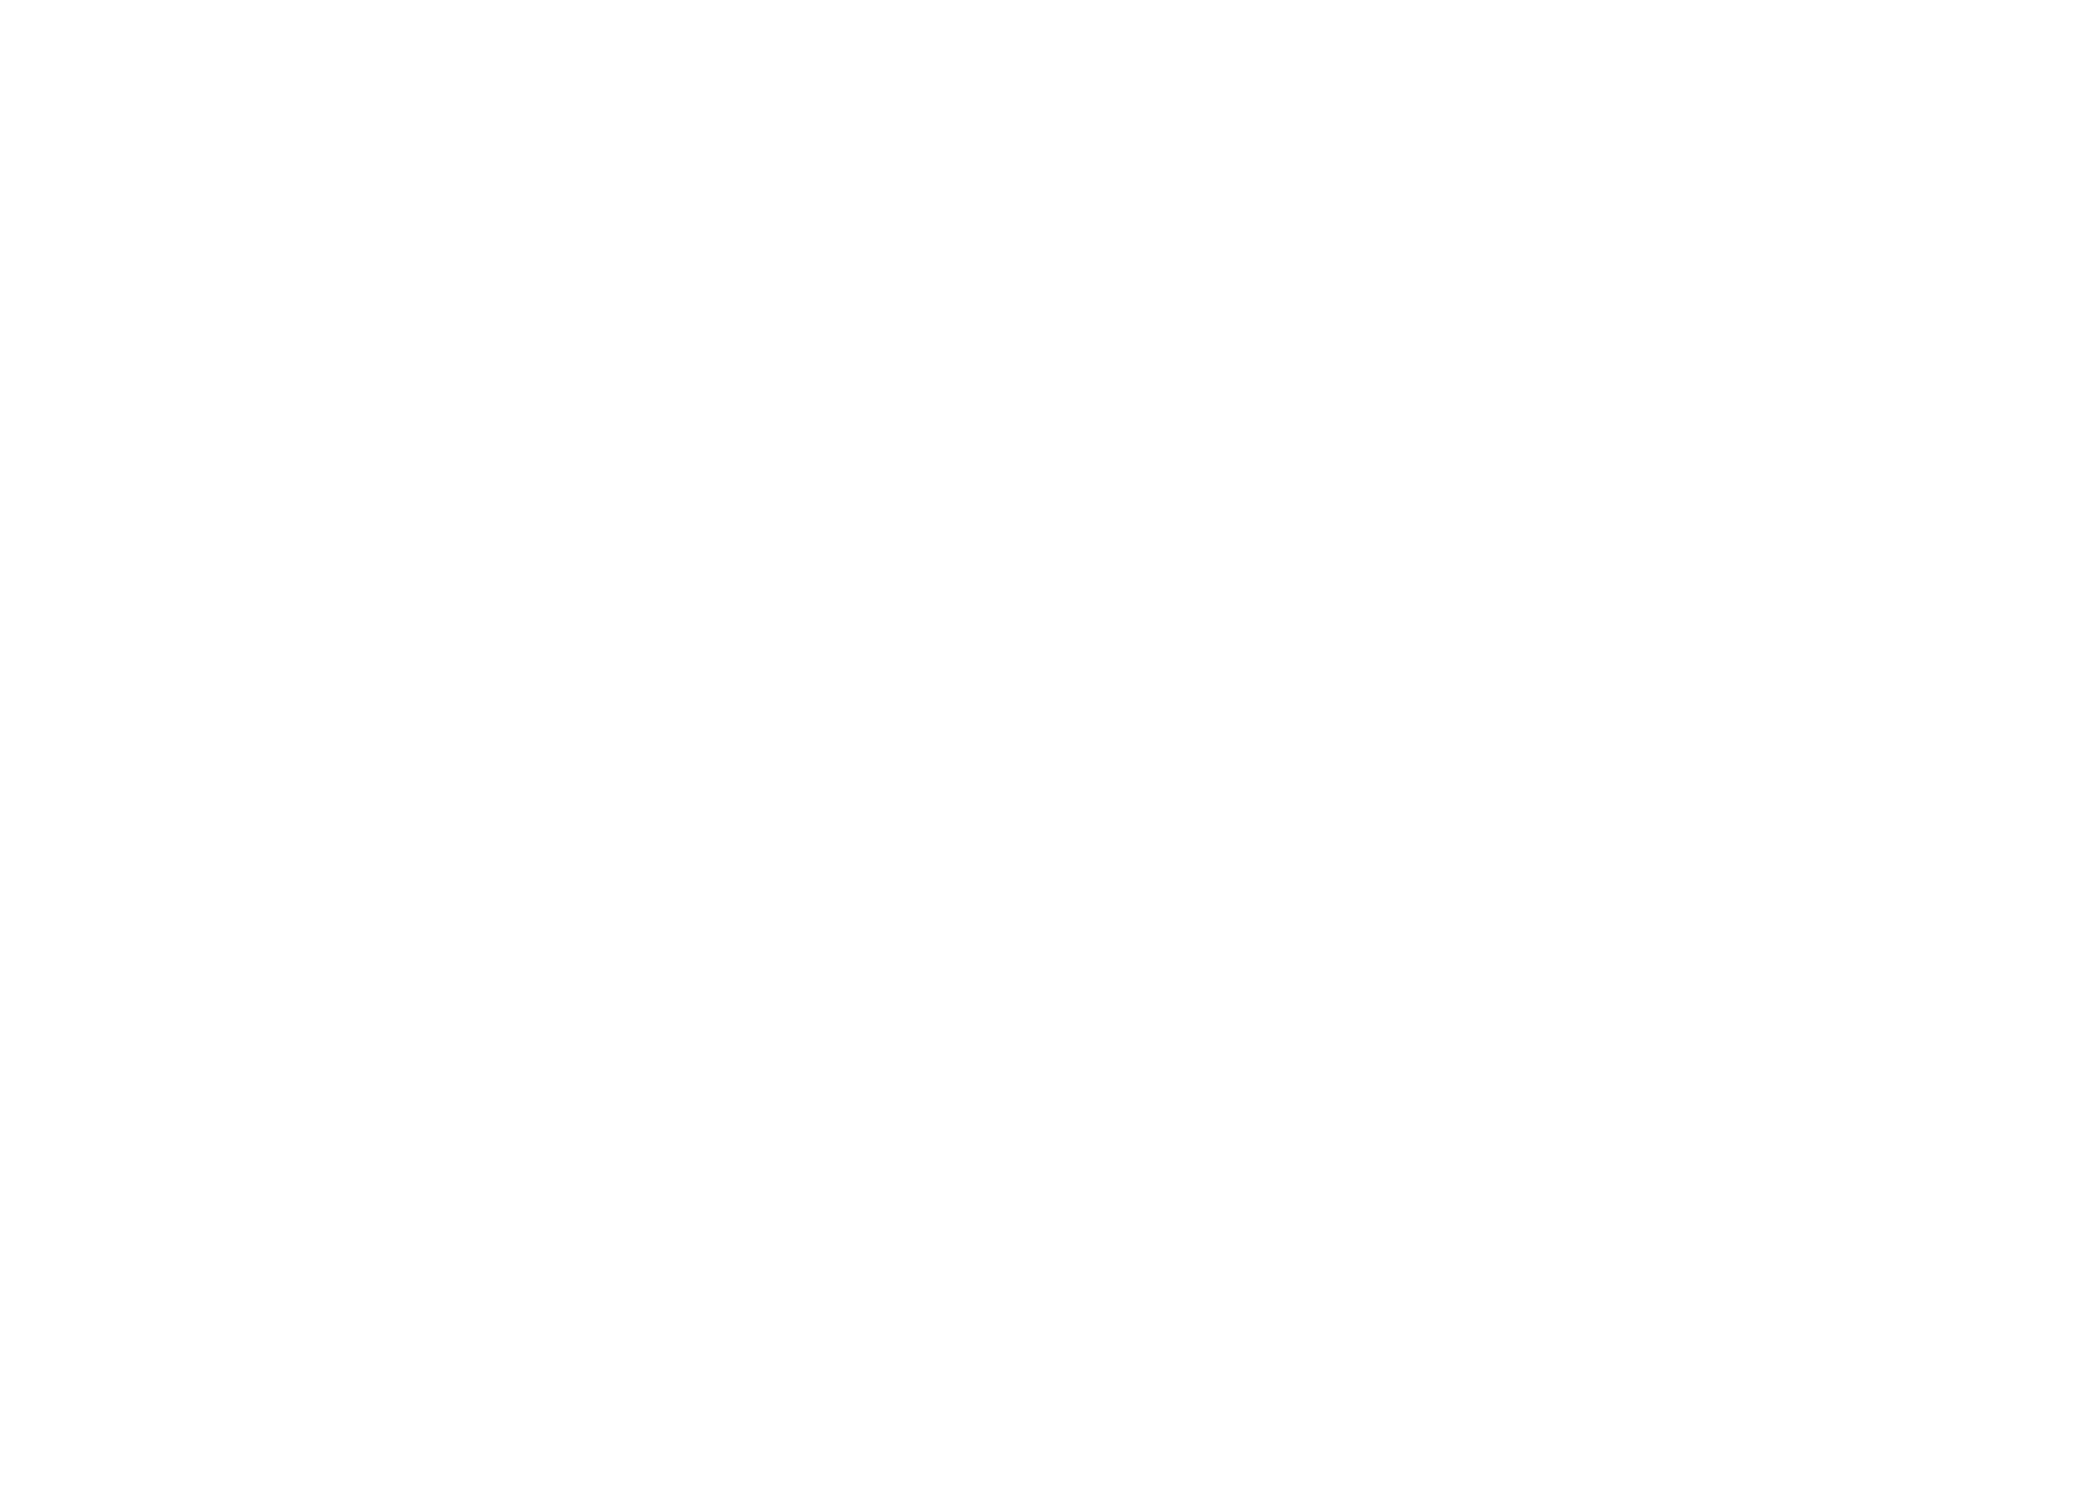 KNZ Photography